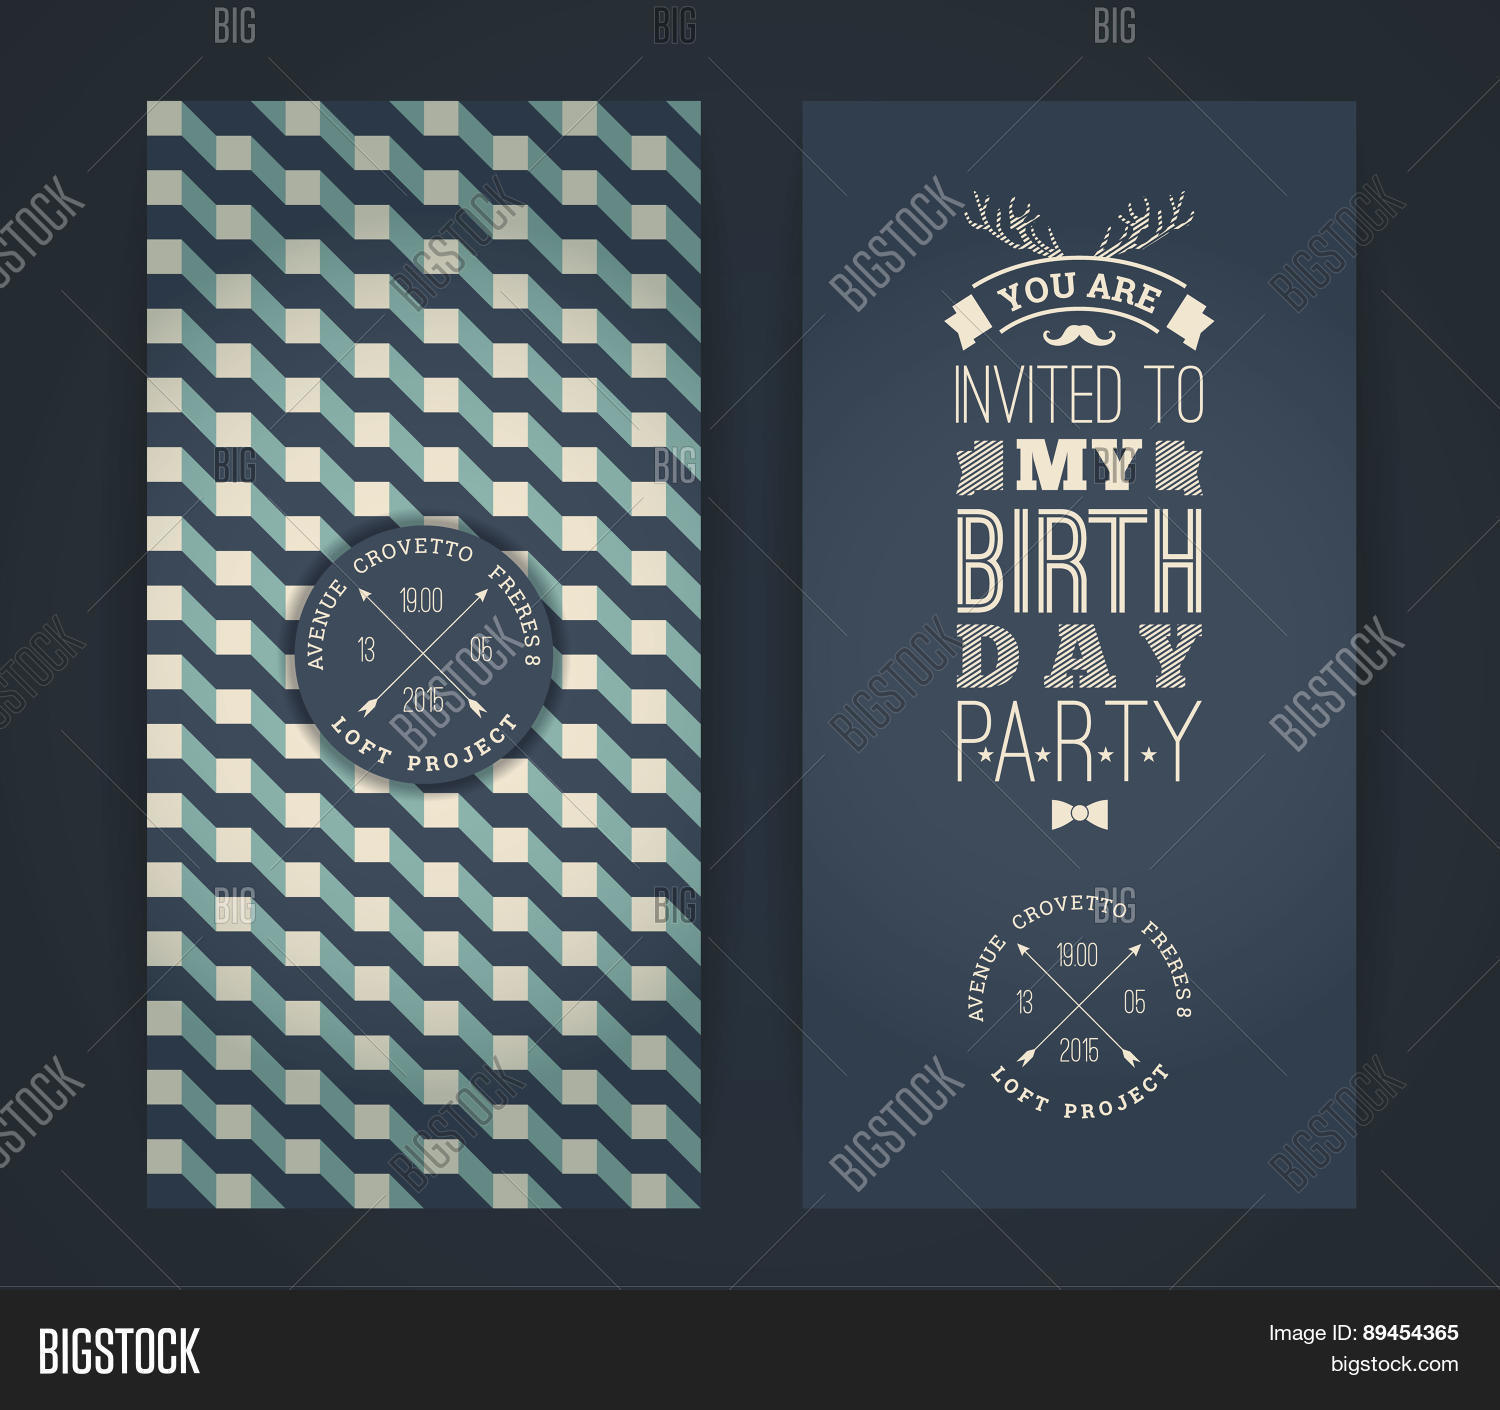 Happy birthday invitation vintage vector photo bigstock happy birthday invitation vintage retro background with geometric pattern stopboris Images